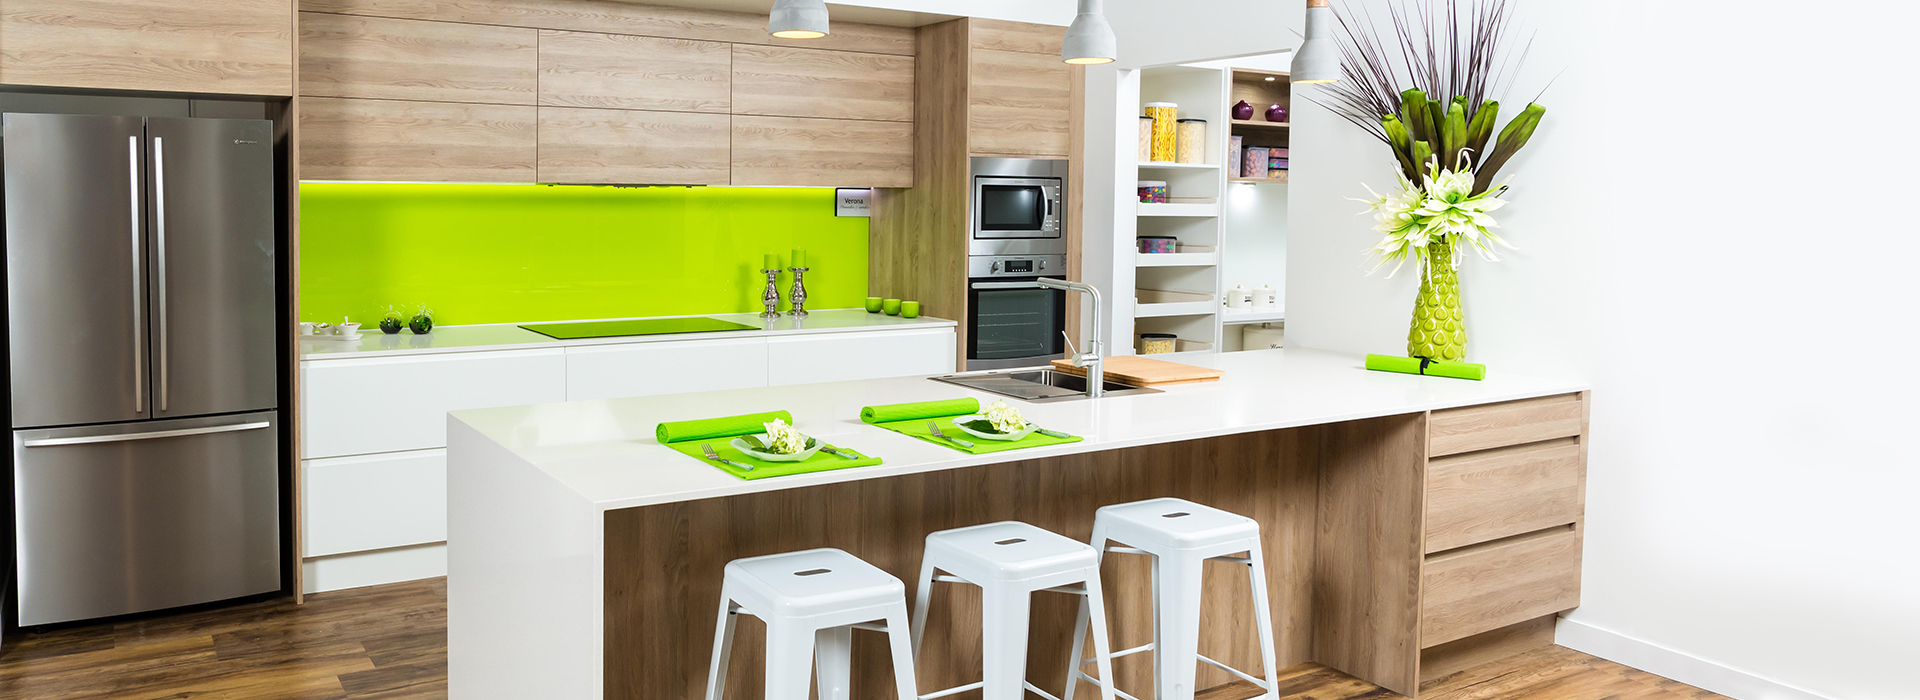 Kitchen renovations and kitchen design Brisbane